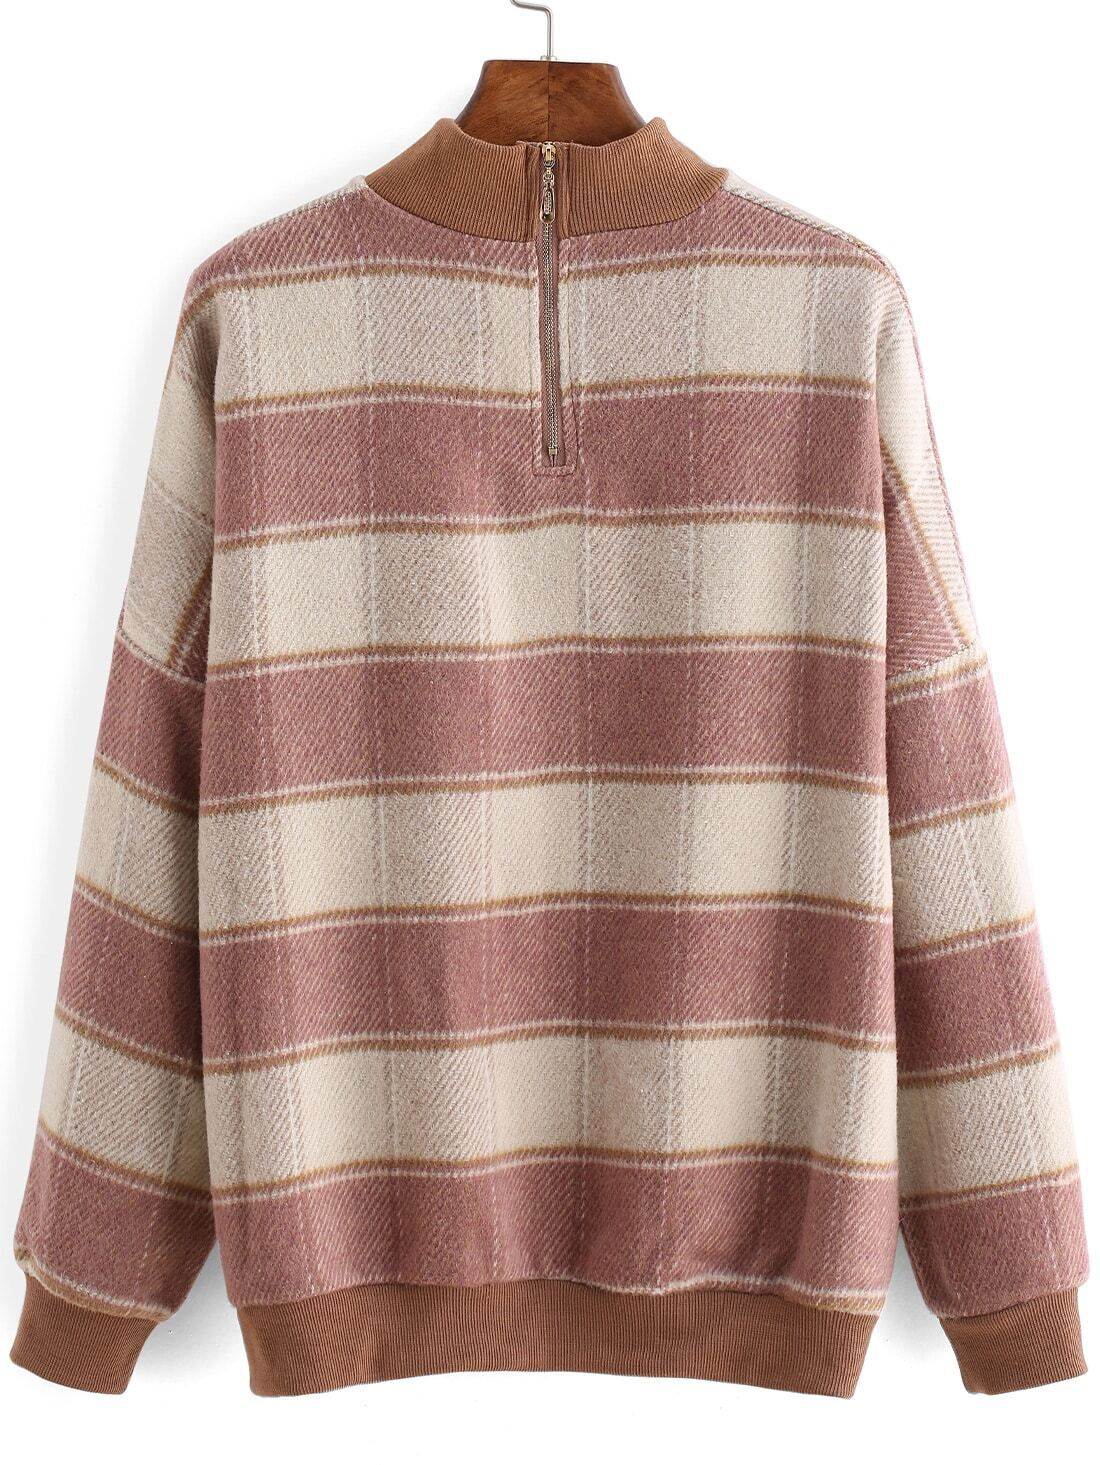 sweat shirt avec manches plaid rose french romwe. Black Bedroom Furniture Sets. Home Design Ideas